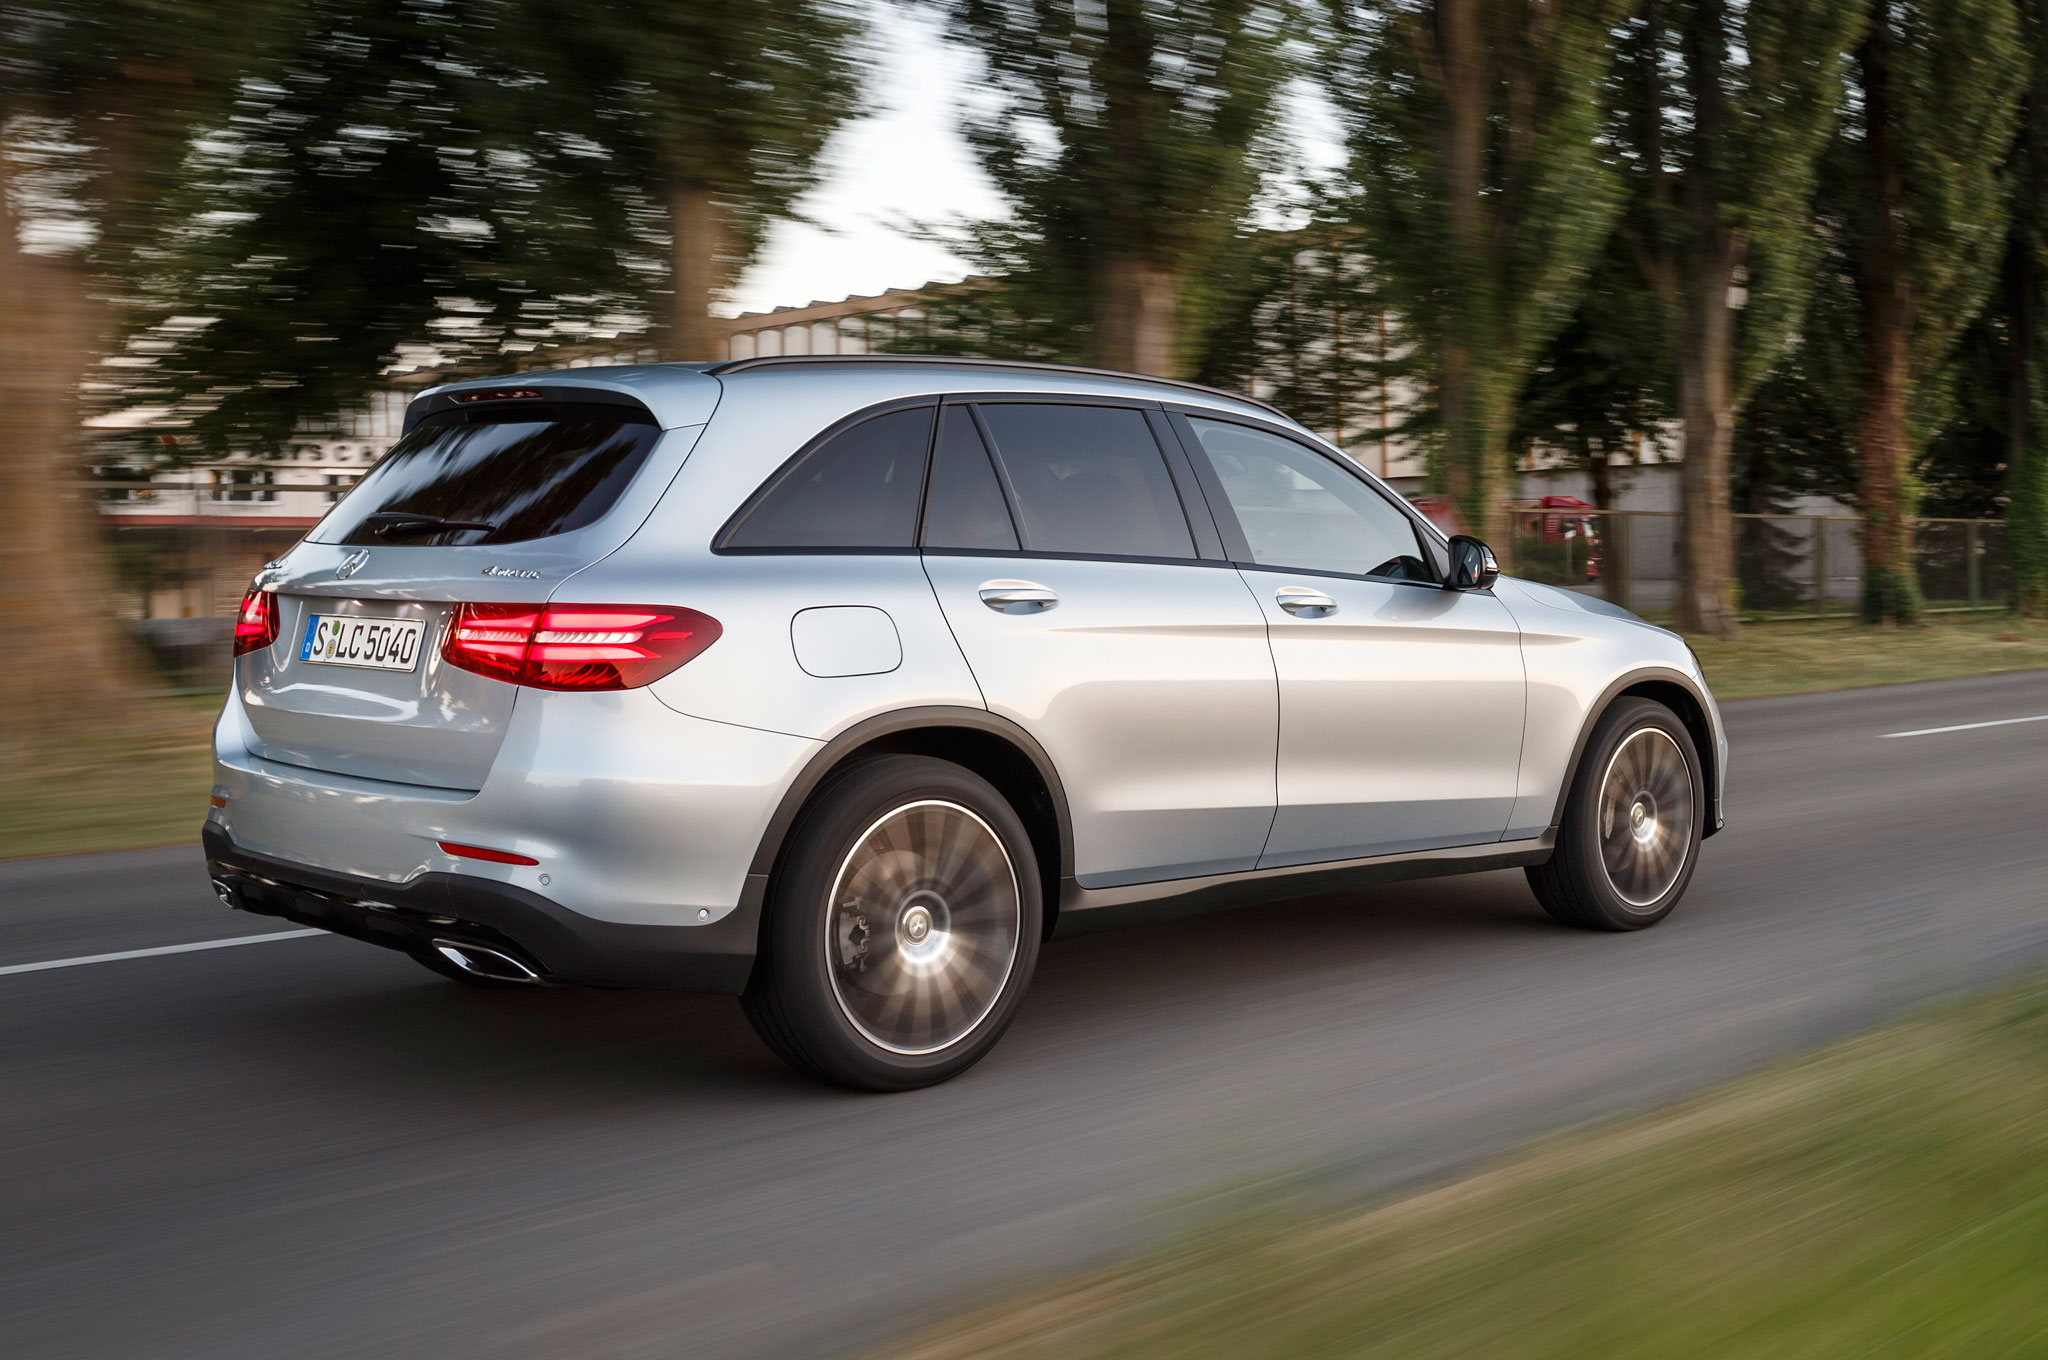 http://st.automobilemag.com/uploads/sites/11/2015/07/2016-Mercedes-Benz-GLC250-4Matic-rear-three-quarter-in-motion-01.jpg